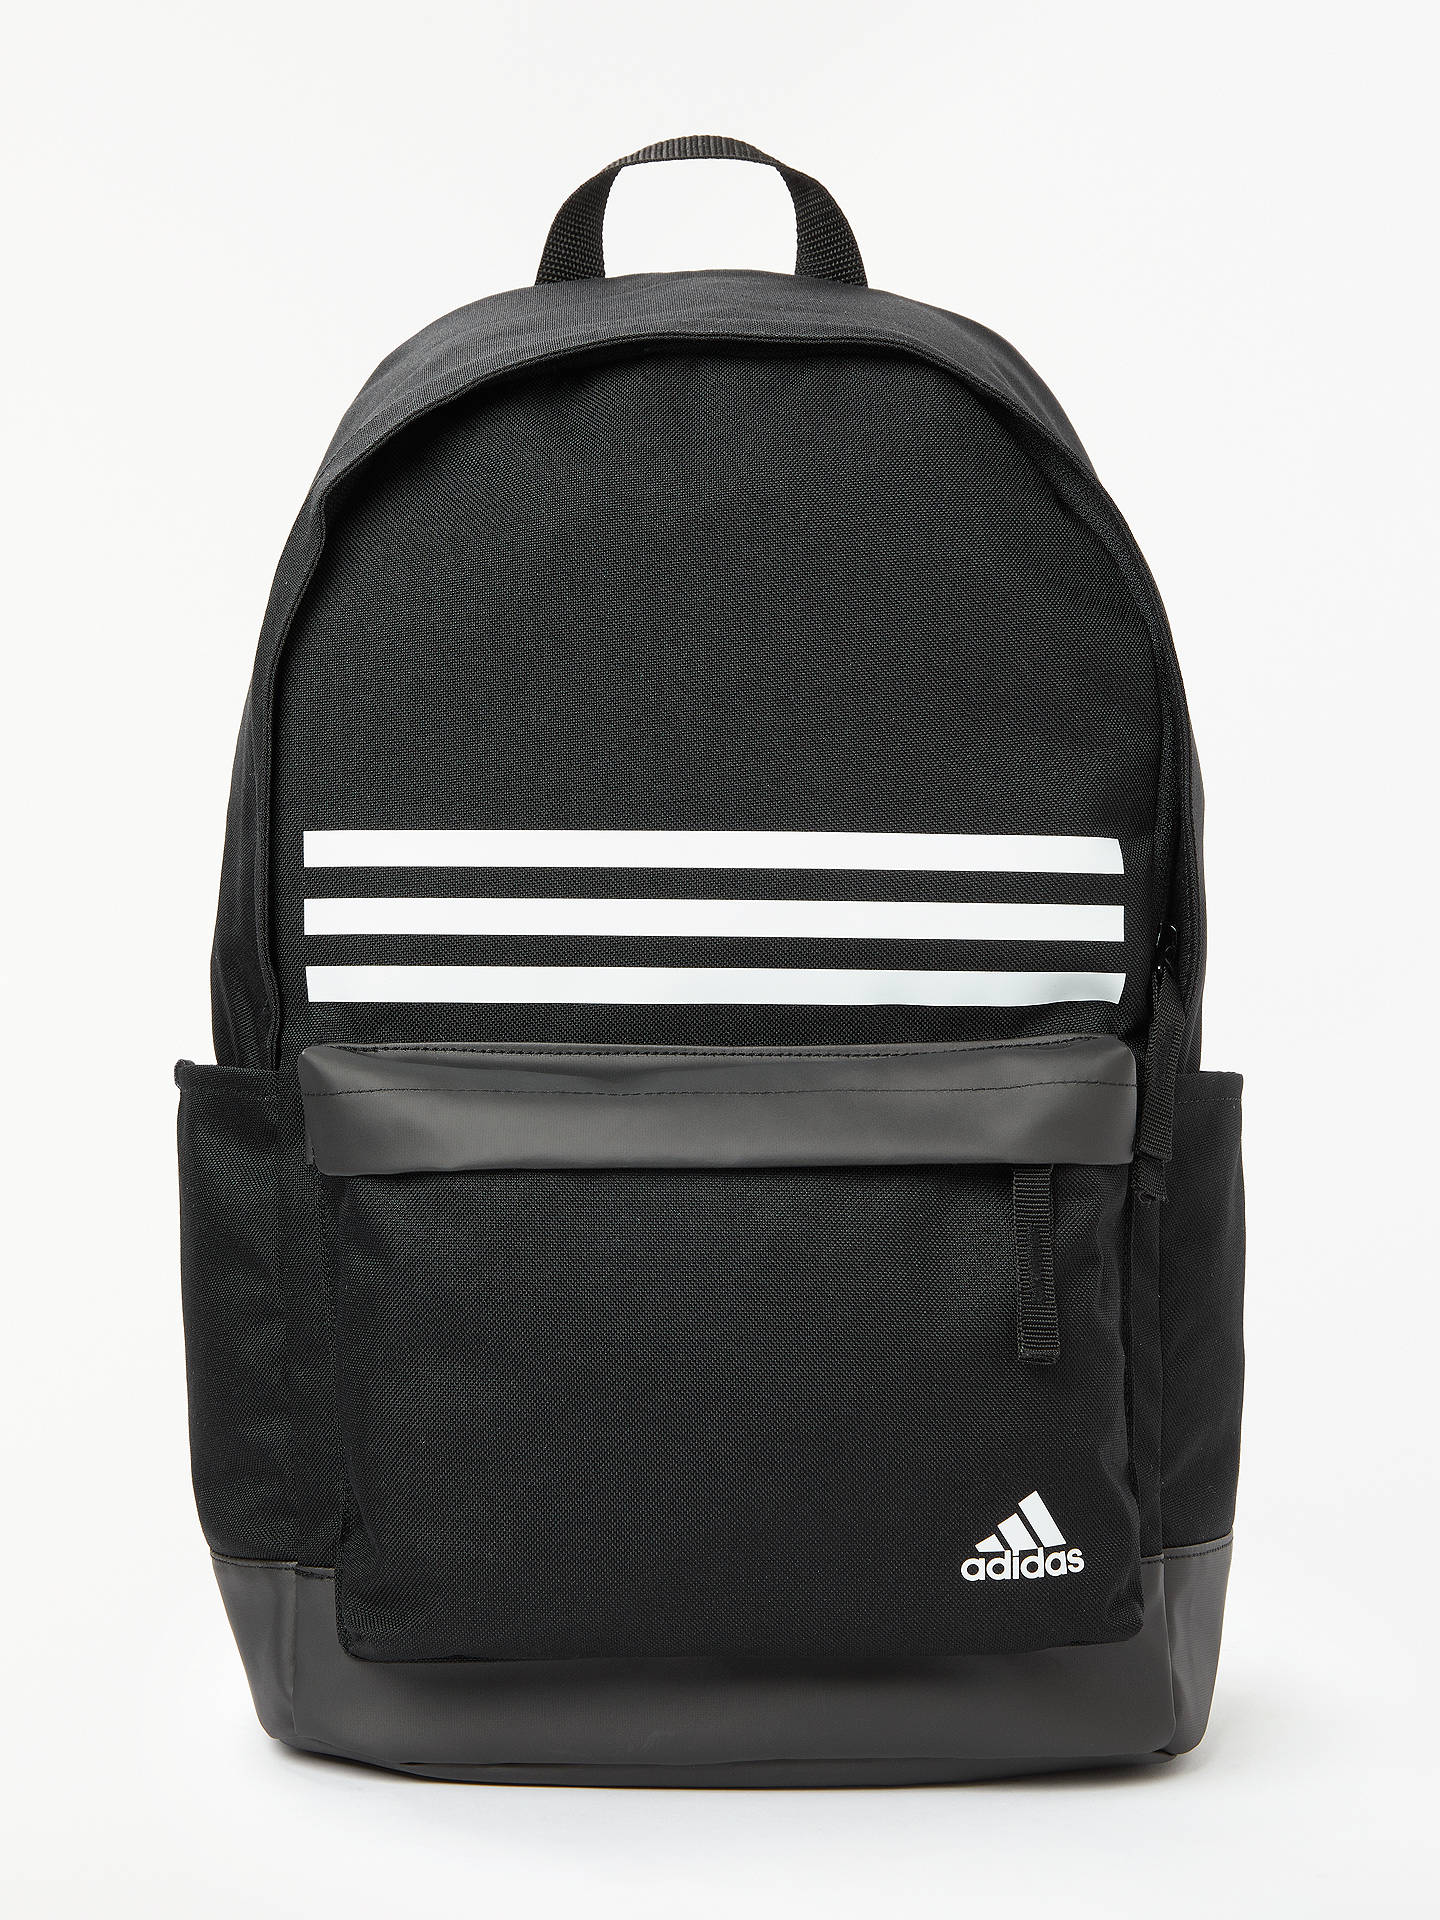 37c5be5ee192 Buyadidas Classic 3-Stripes Pocket Backpack